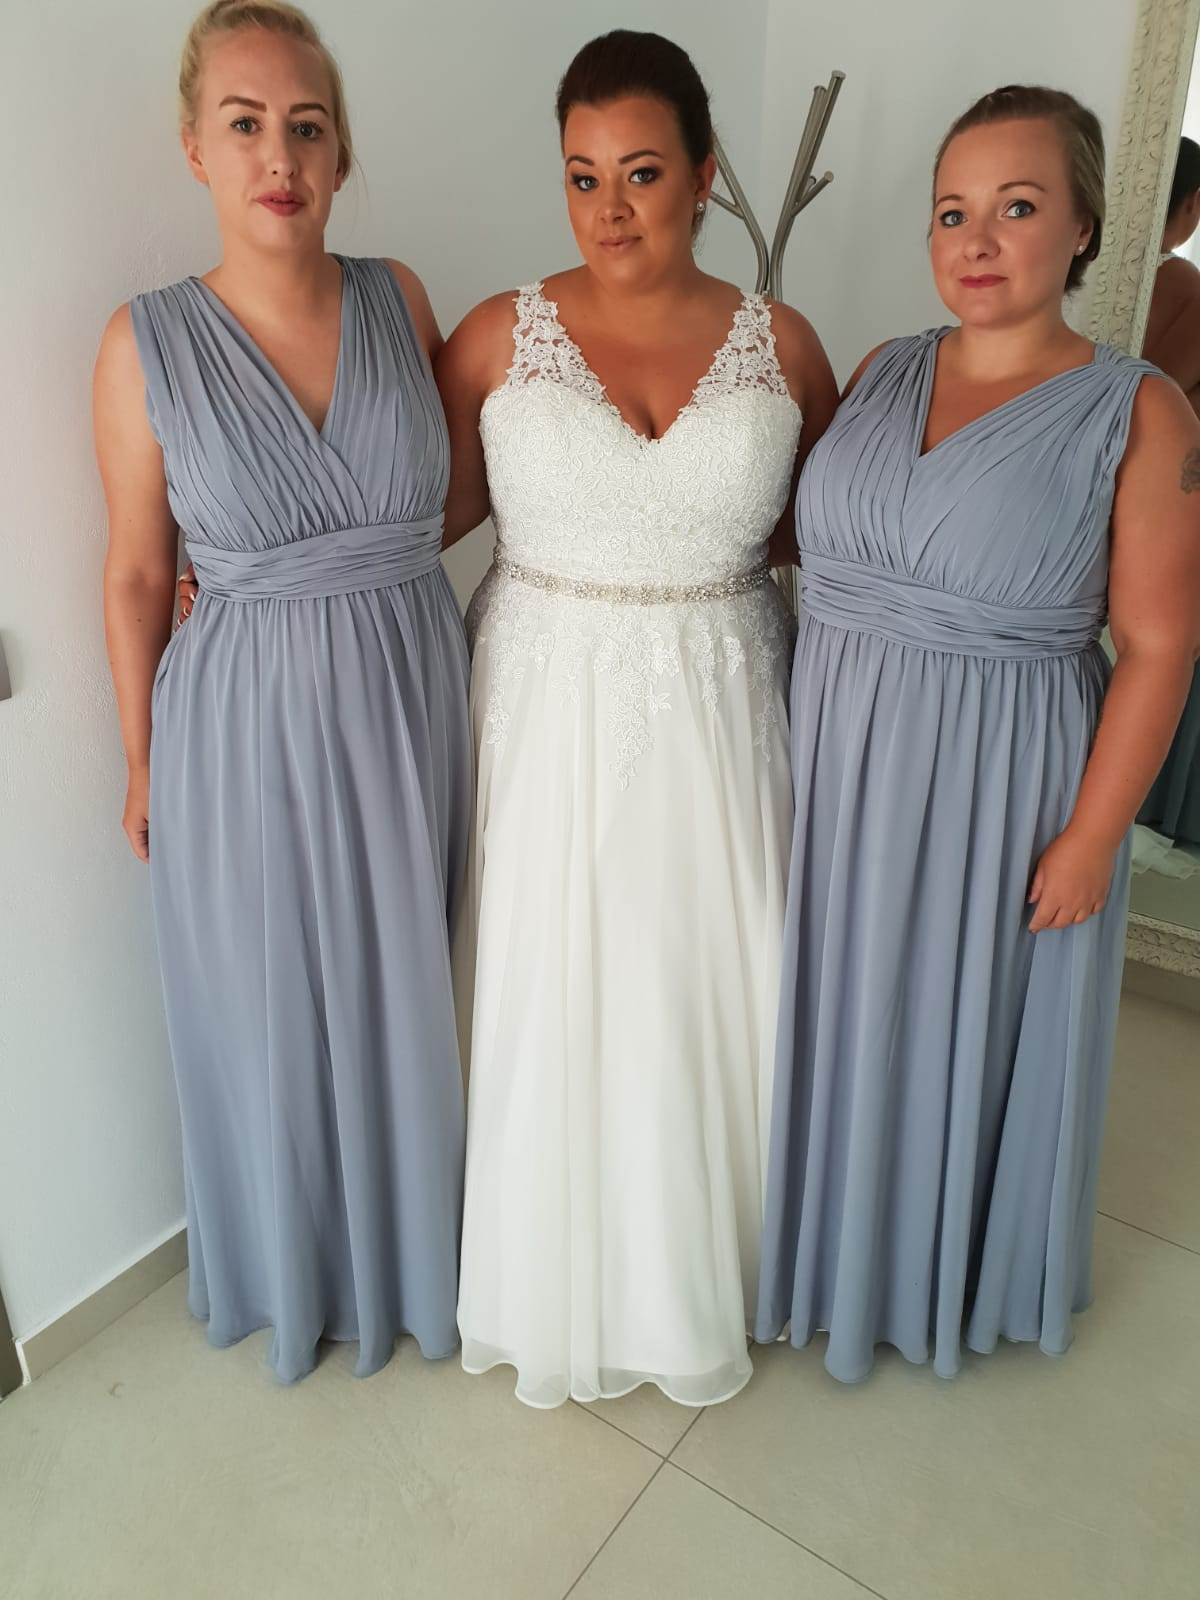 Leanne Holland in Santorini with her bridesmaids